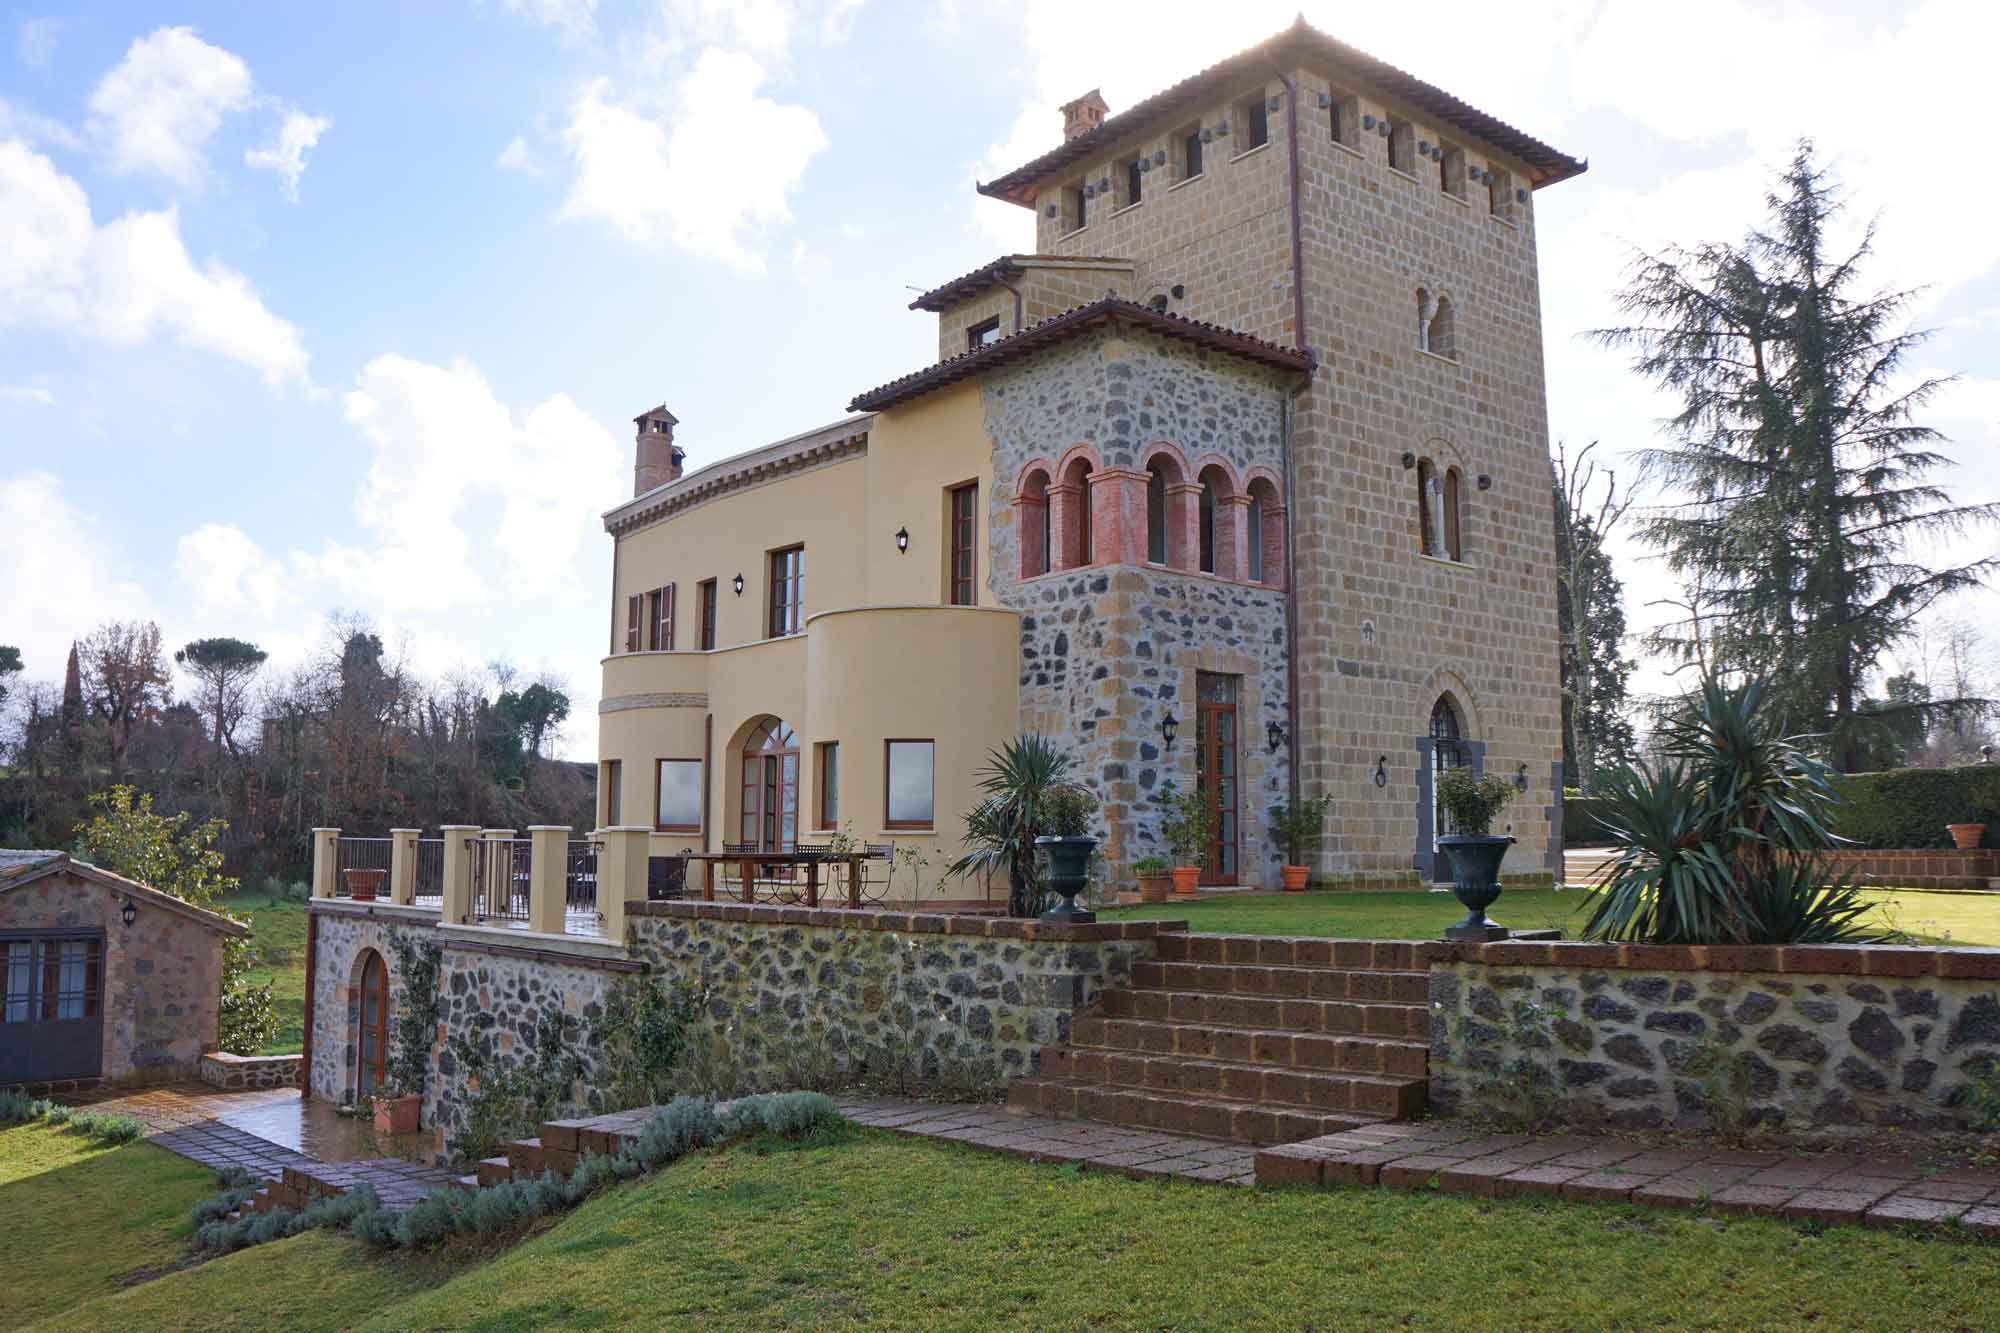 This unique circa-1890s villa has a breathtaking setting in the hills above the enchanting cathedral city of Orvieto, in Umbria, Italy.